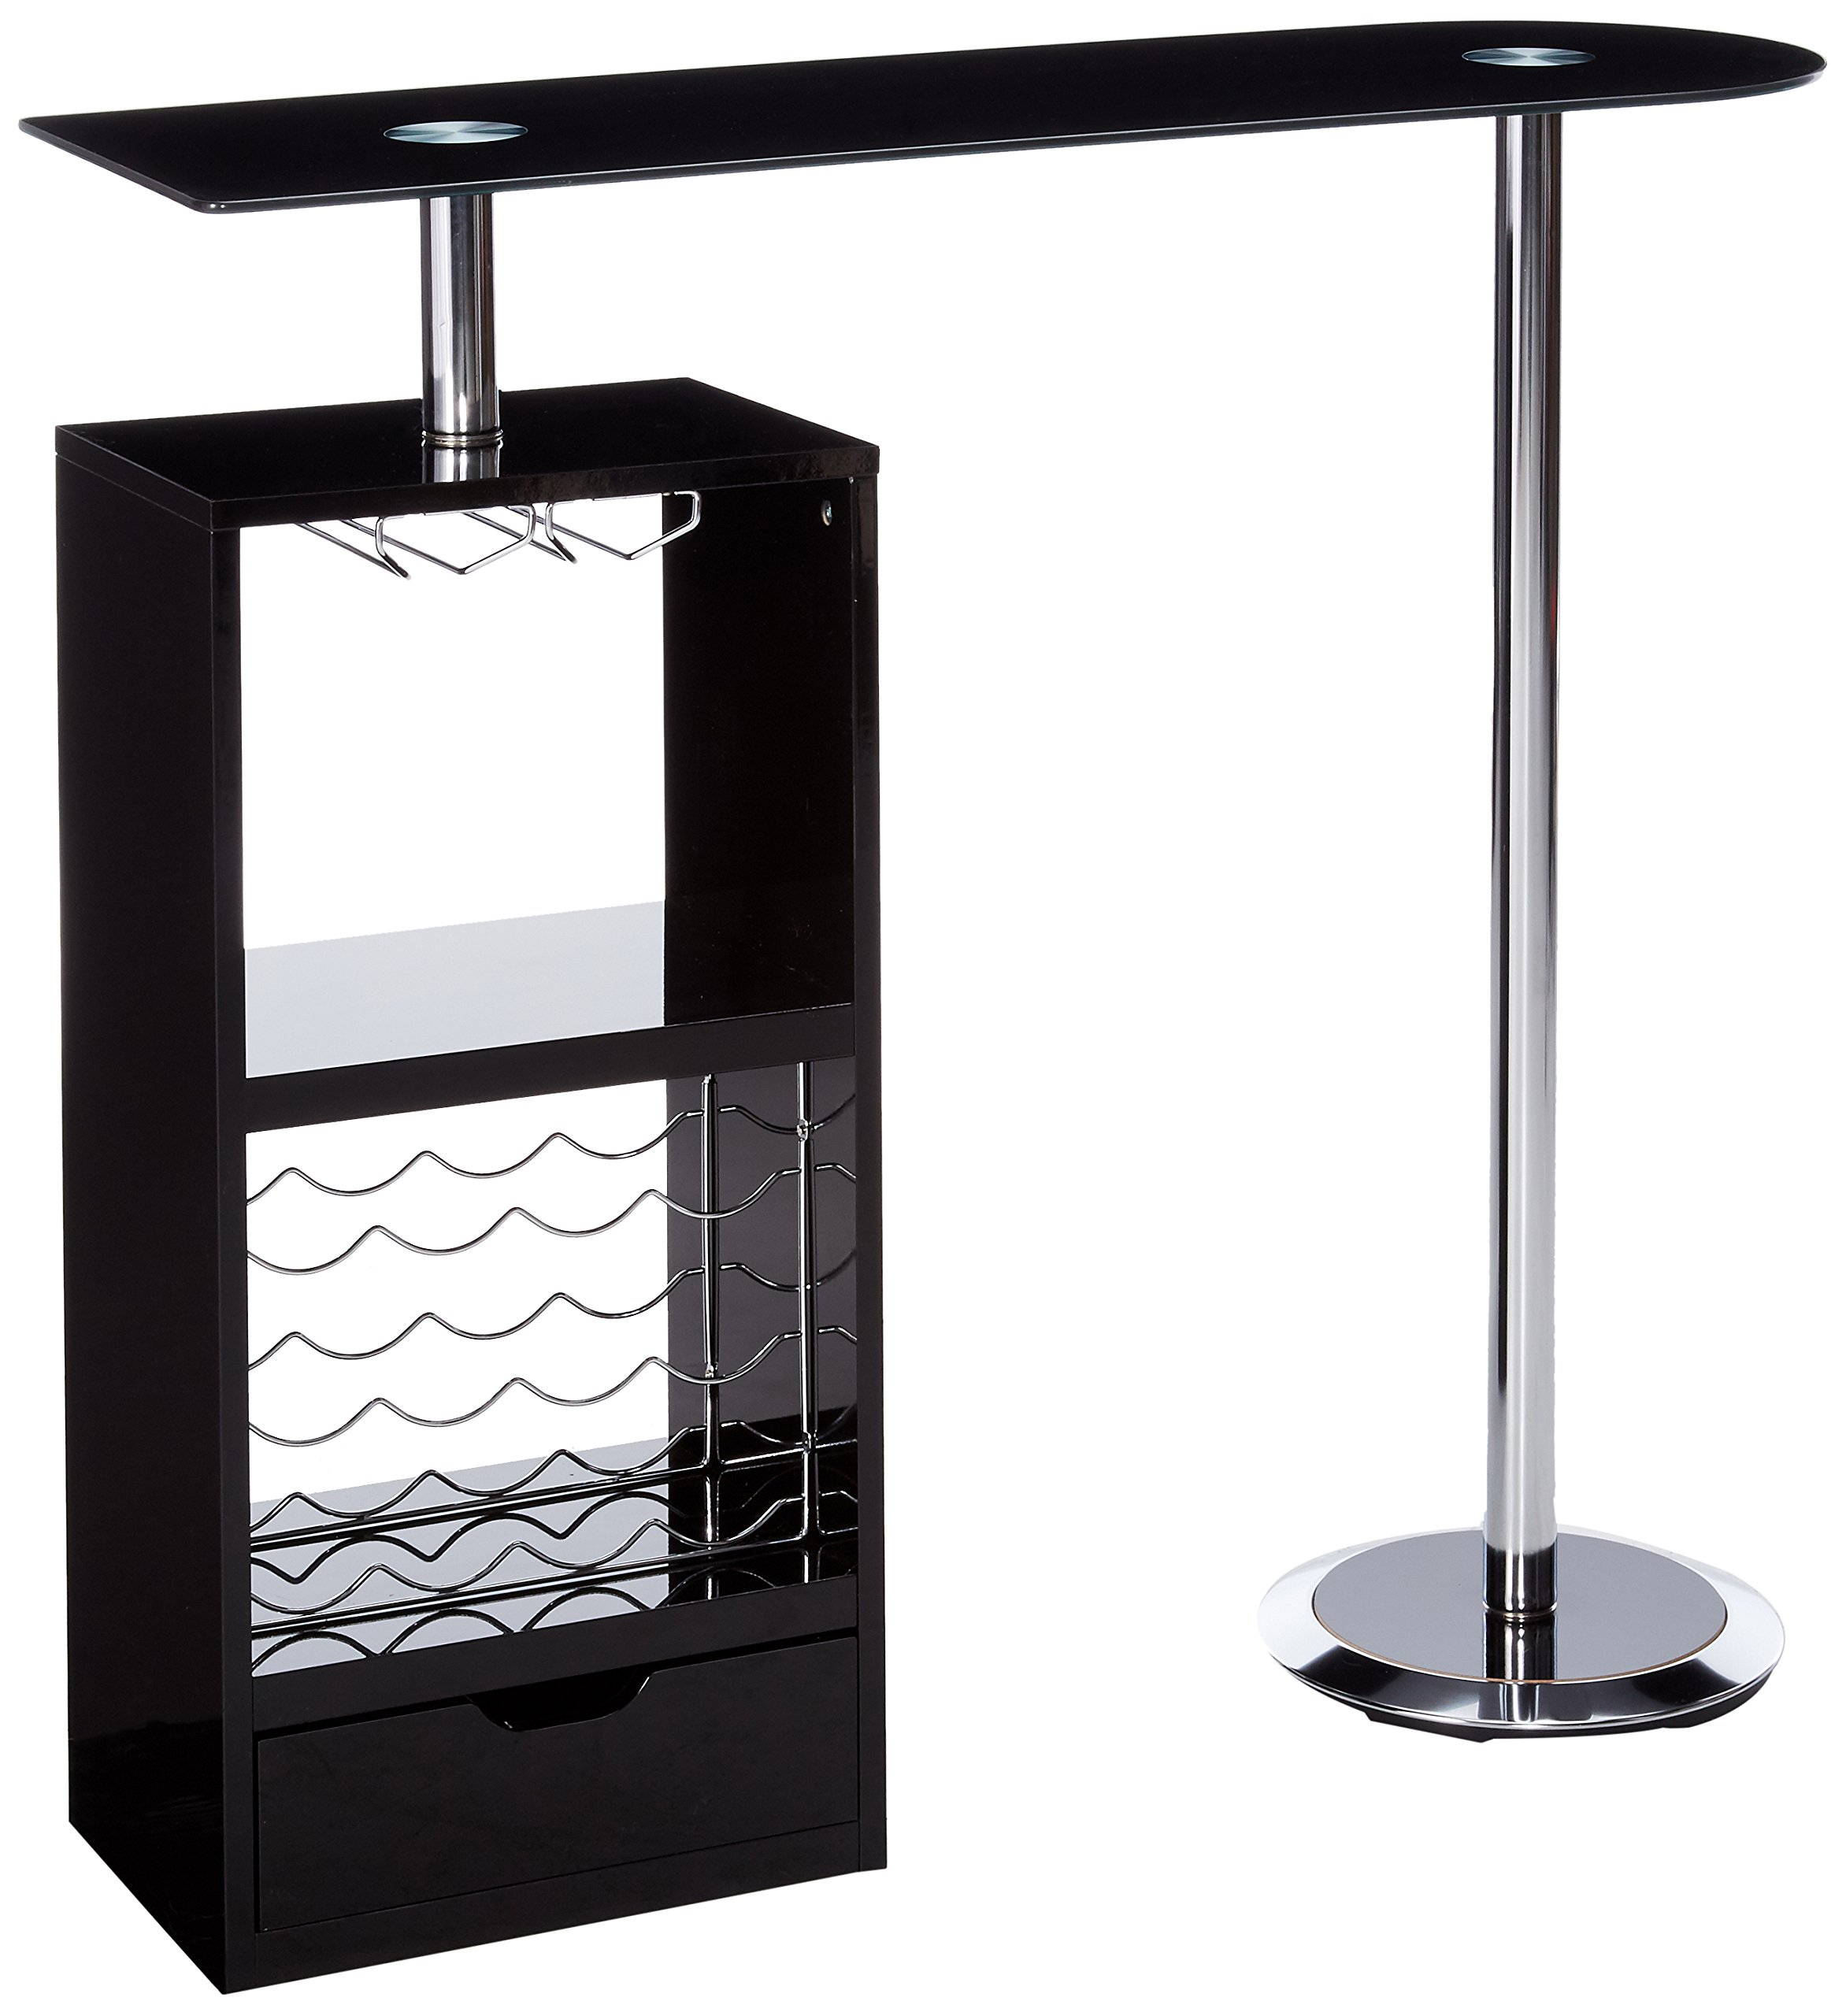 Coaster Contemporary Glossy Black Bar Unit with Sturdy Tempered Frosted Glass Top by Coaster Home Furnishings